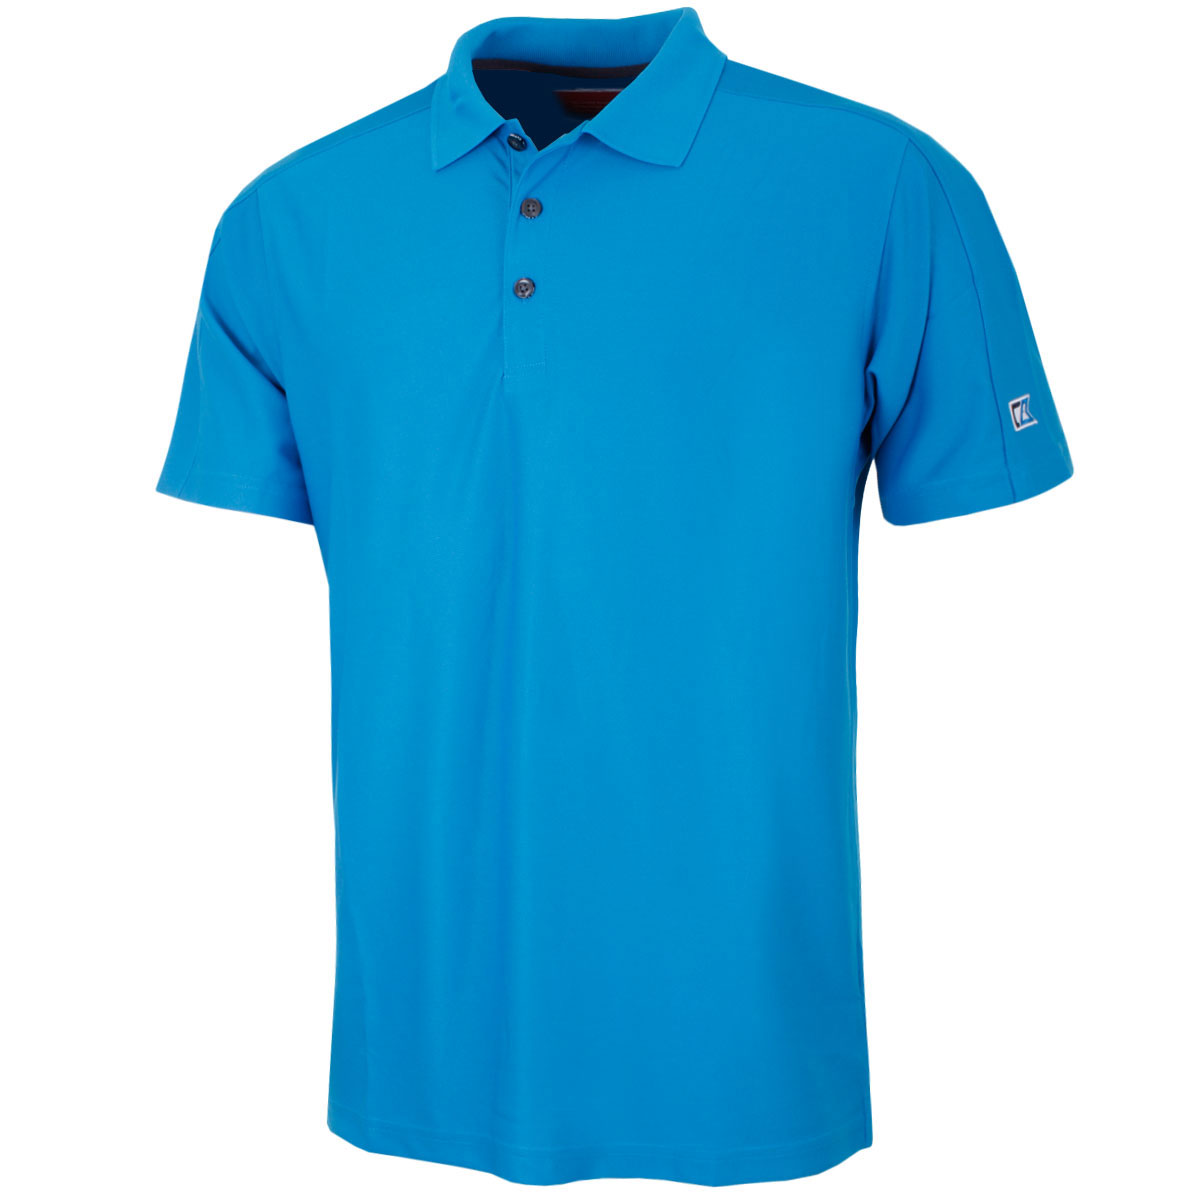 Cutter buck 2016 mens plain drytec event golf for Cutter buck polo shirt size chart